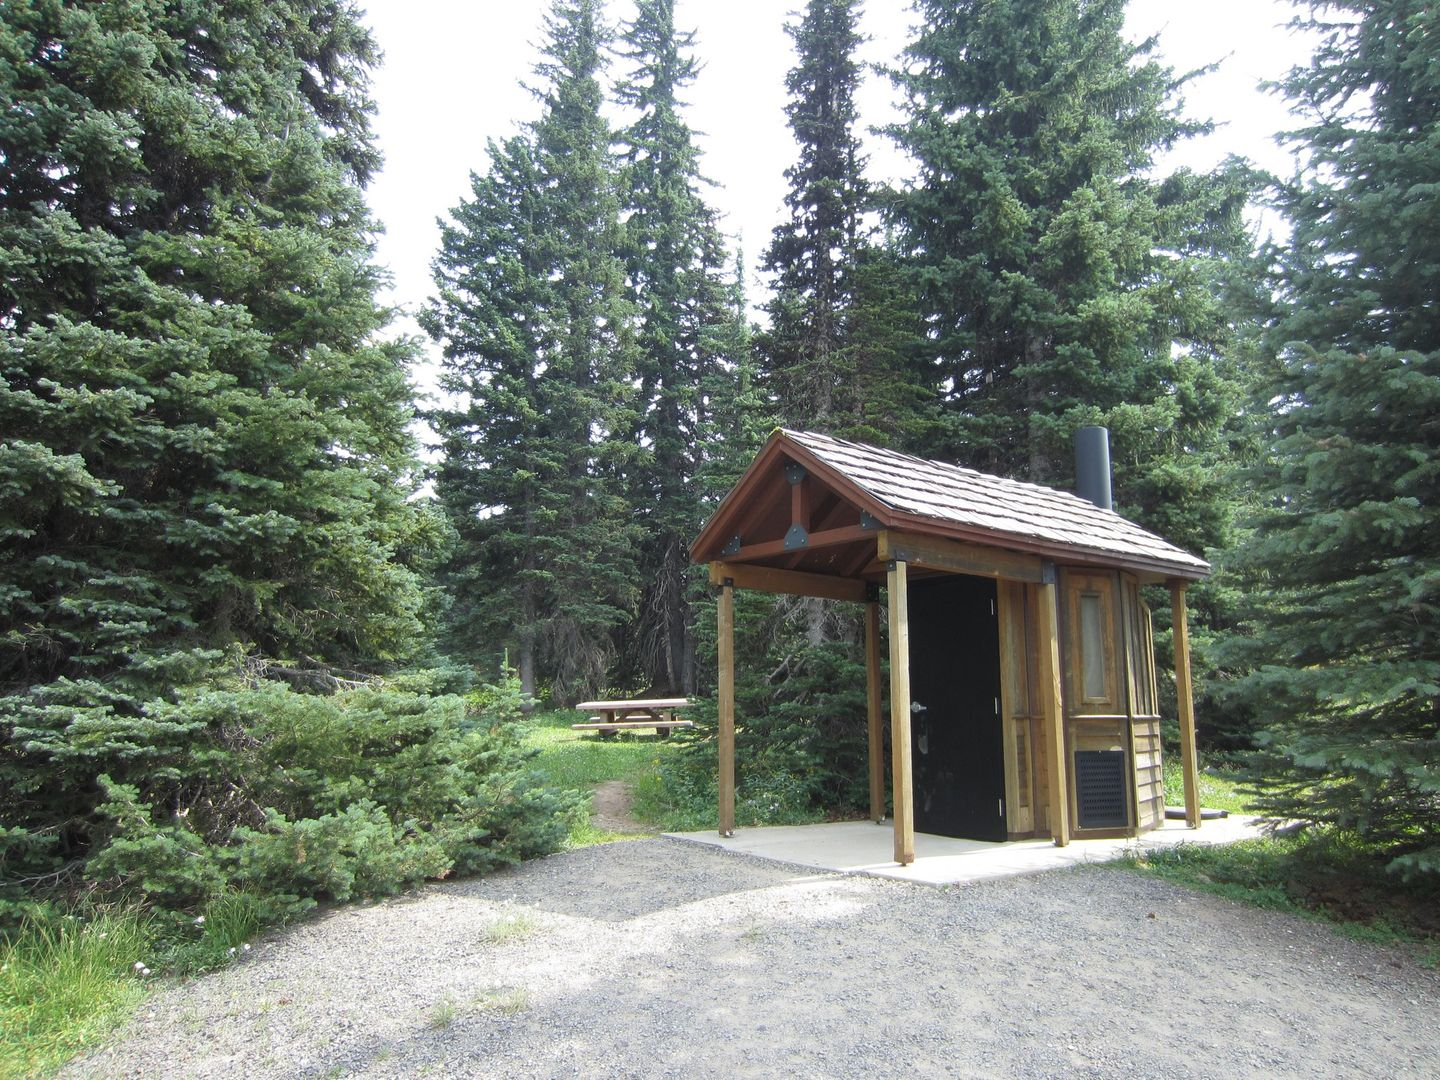 Bennett Pass Road - Waypoint 13: Staging Area and Restrooms